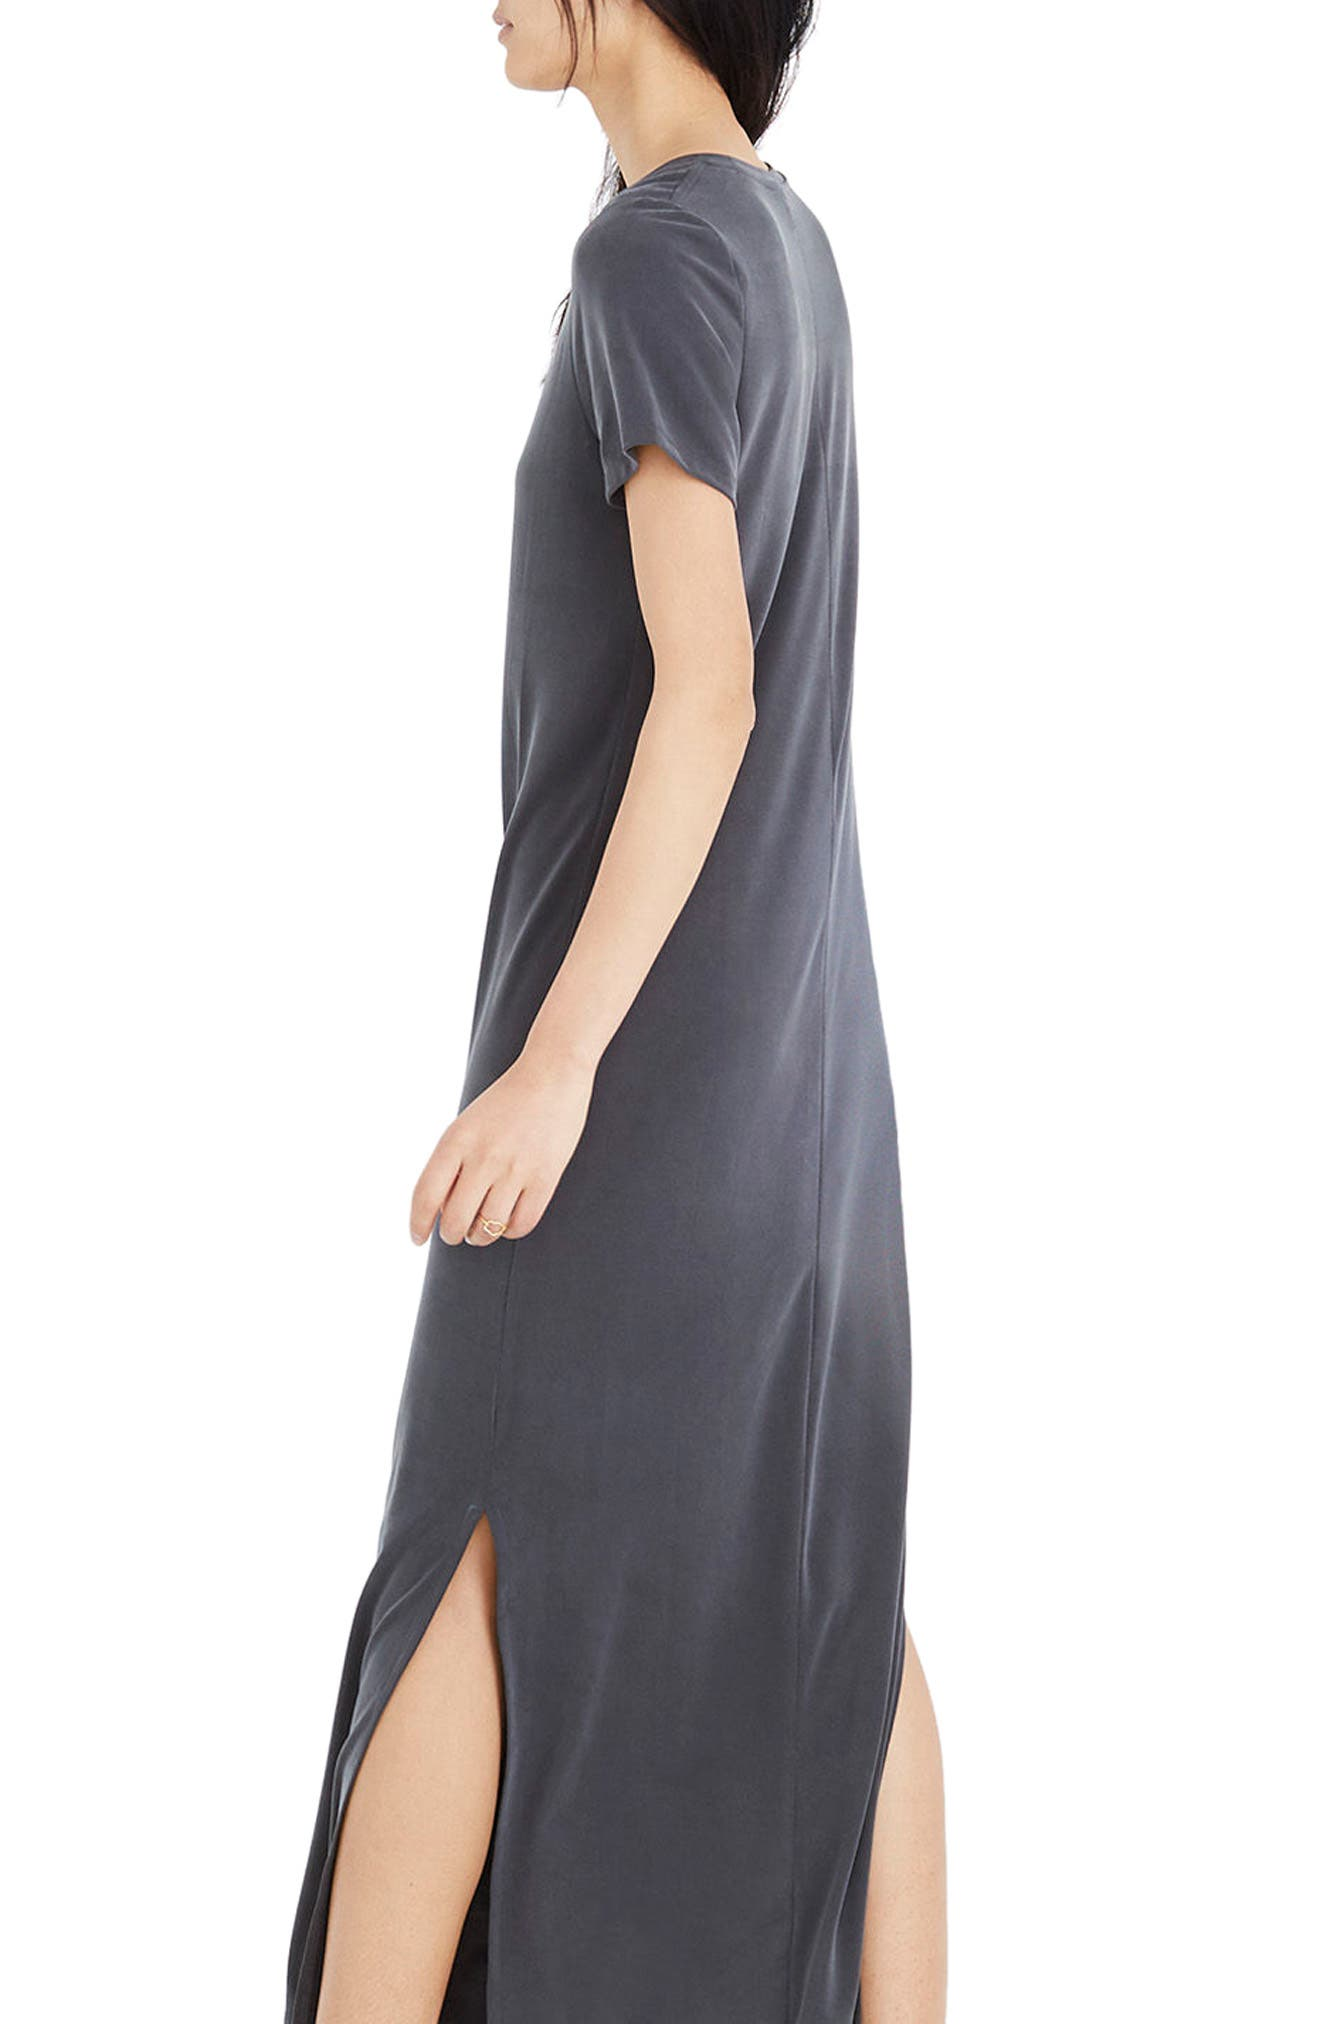 MADEWELL,                             Sandwashed Maxi T-Shirt Dress,                             Alternate thumbnail 3, color,                             020